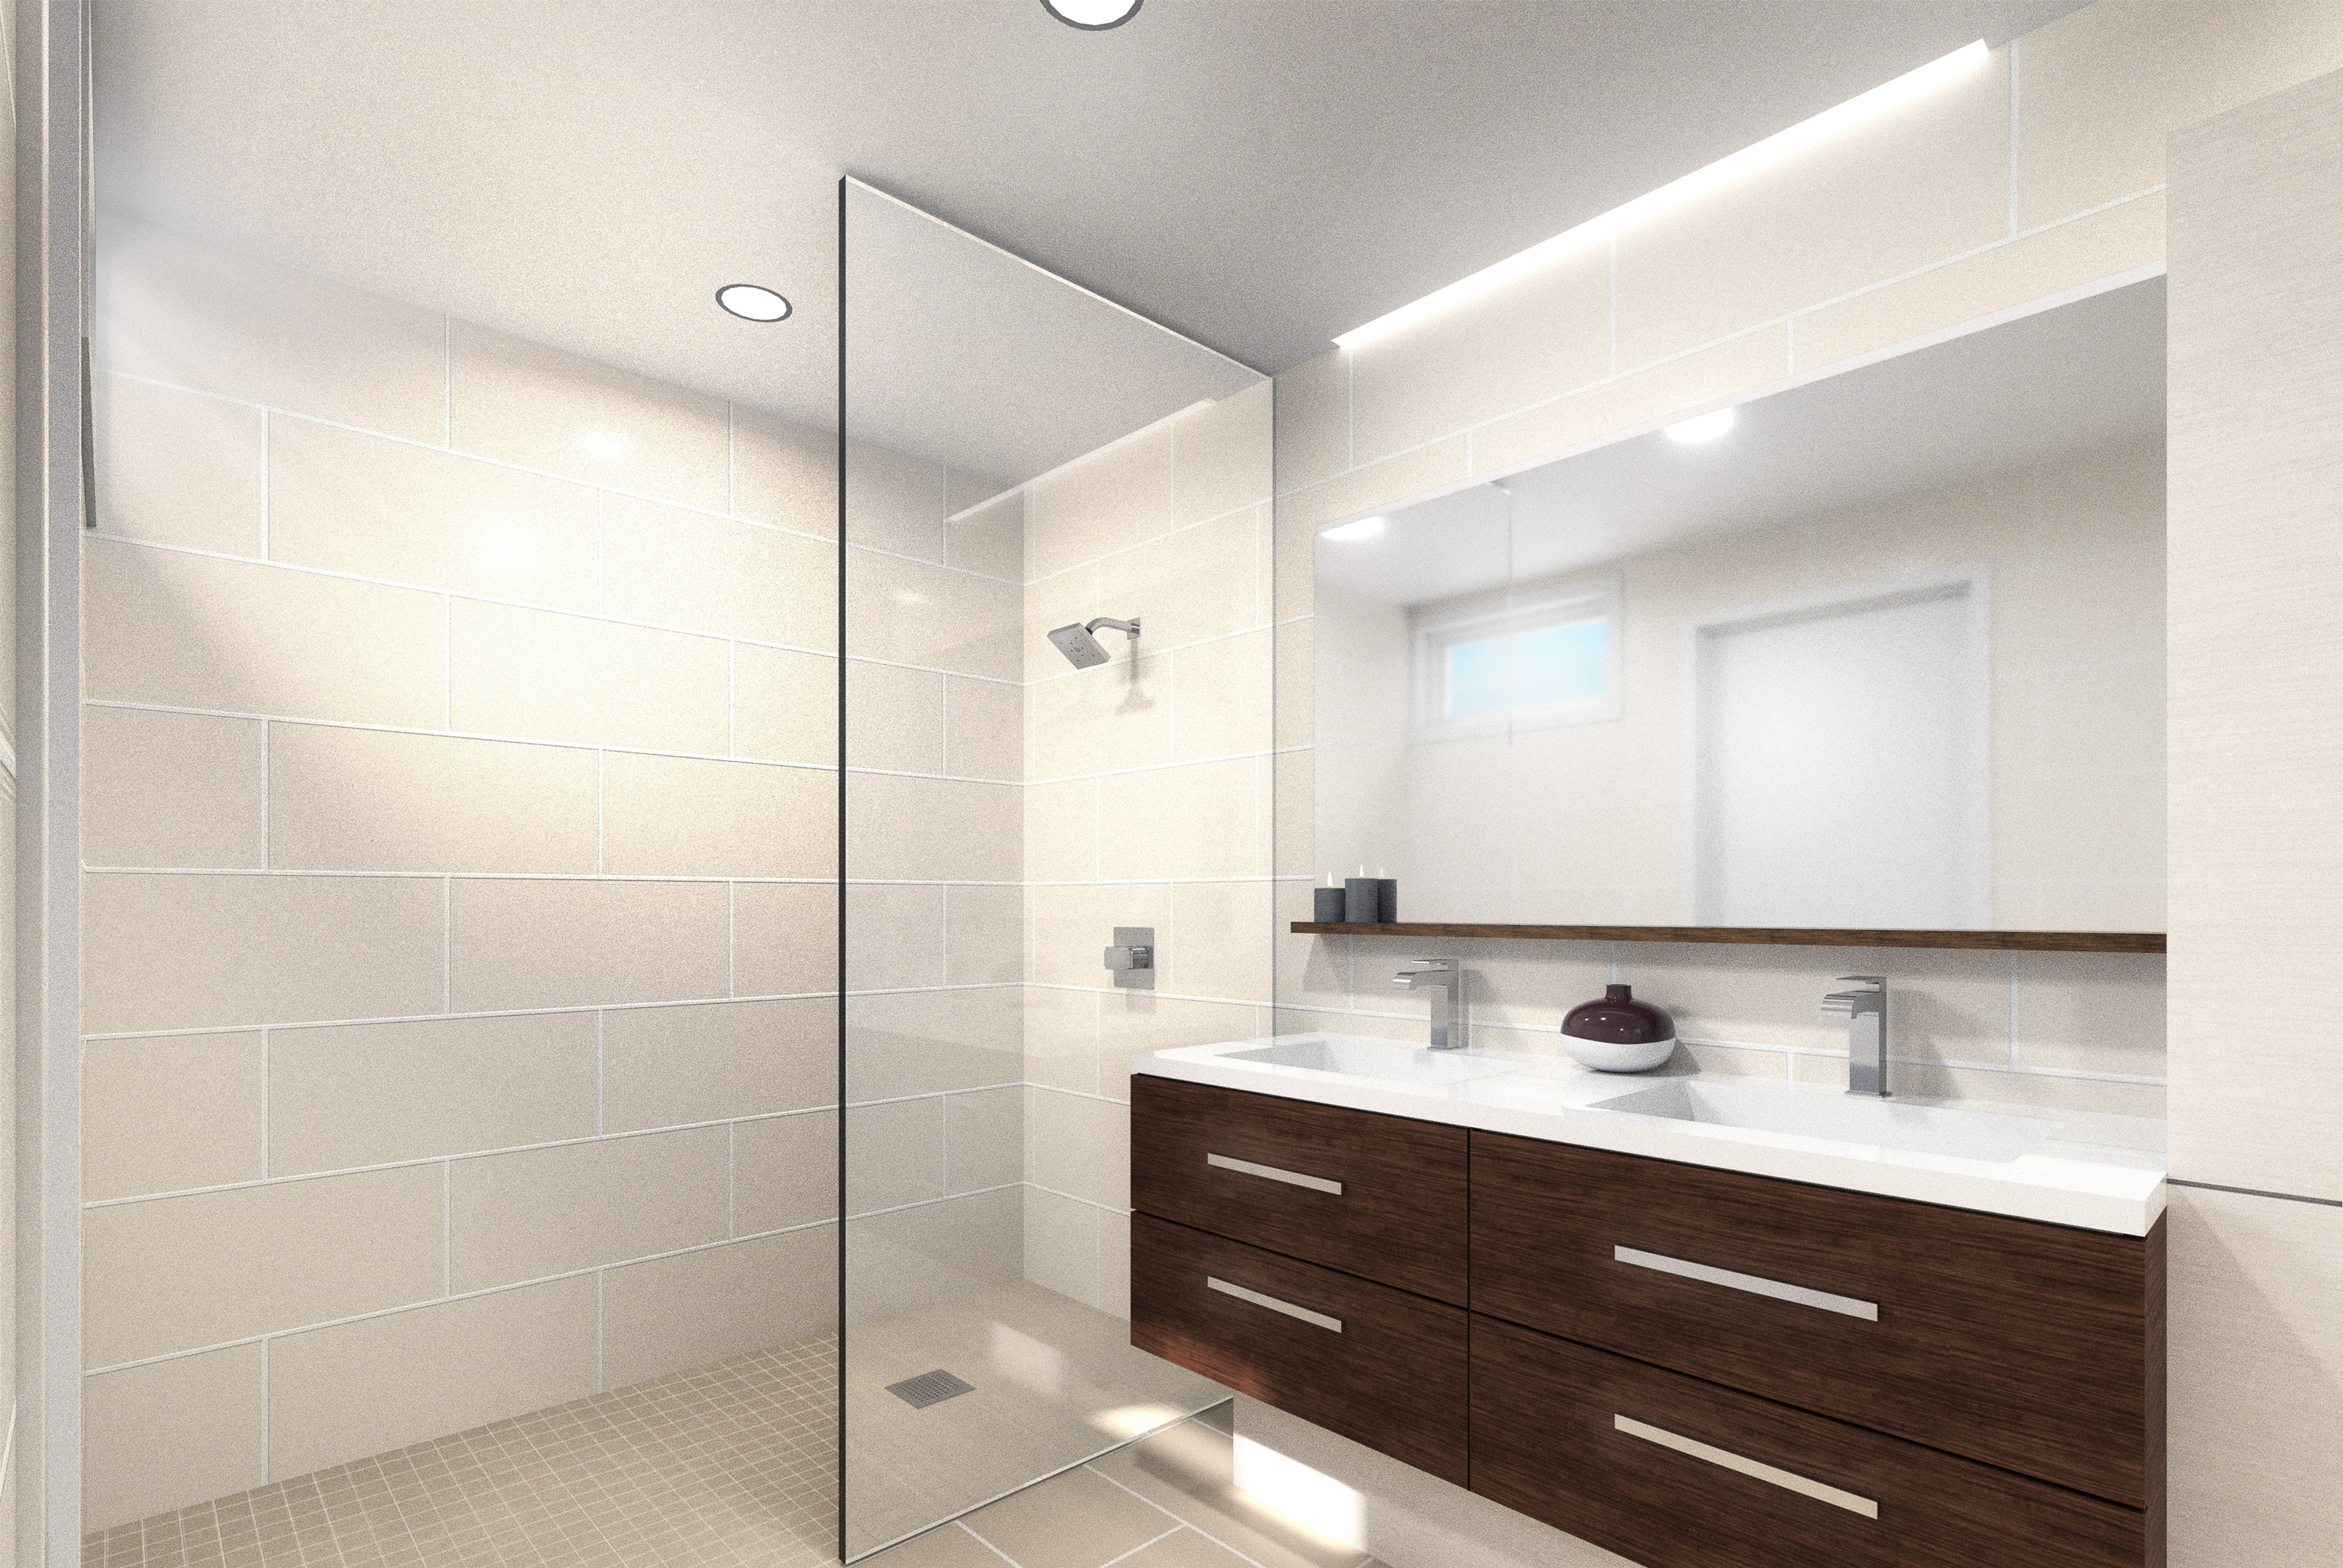 3D Renderings for New Construction: 7 Reasons It Can Help Pre-Sell